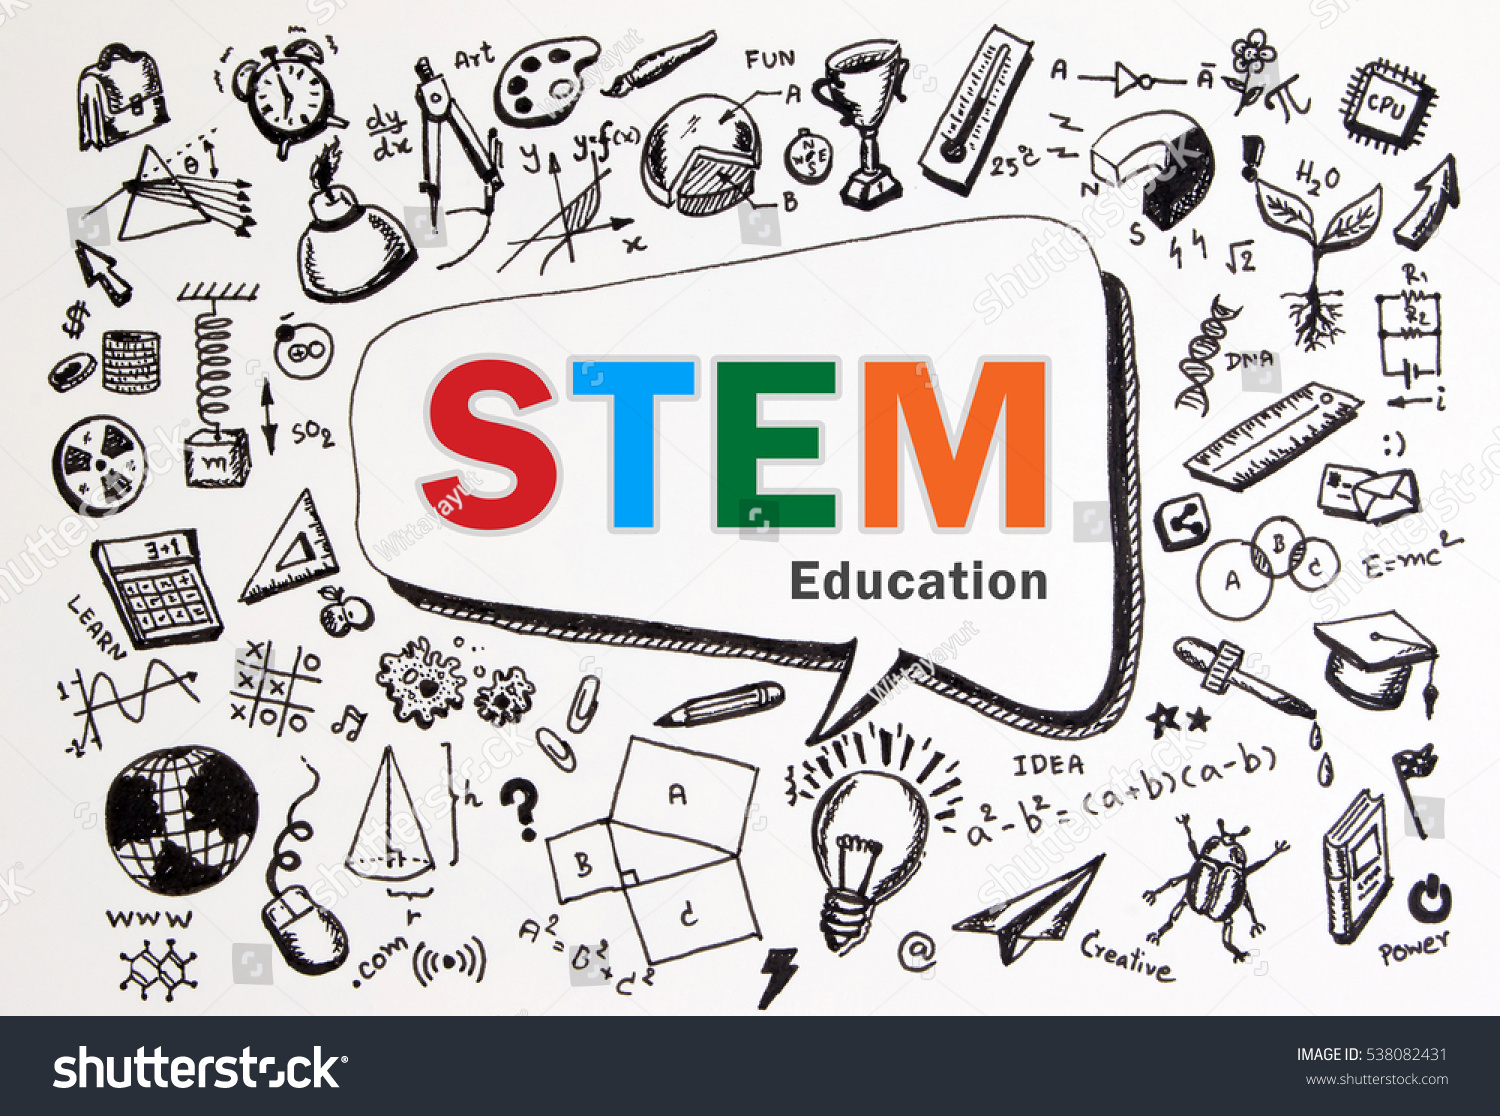 a description of the integration of science technology engineering and mathematics stem Stem lesson essentials, grades 3-8  full description stem lesson essentials moves  schools and students in an integration of science, technology, engineering,.